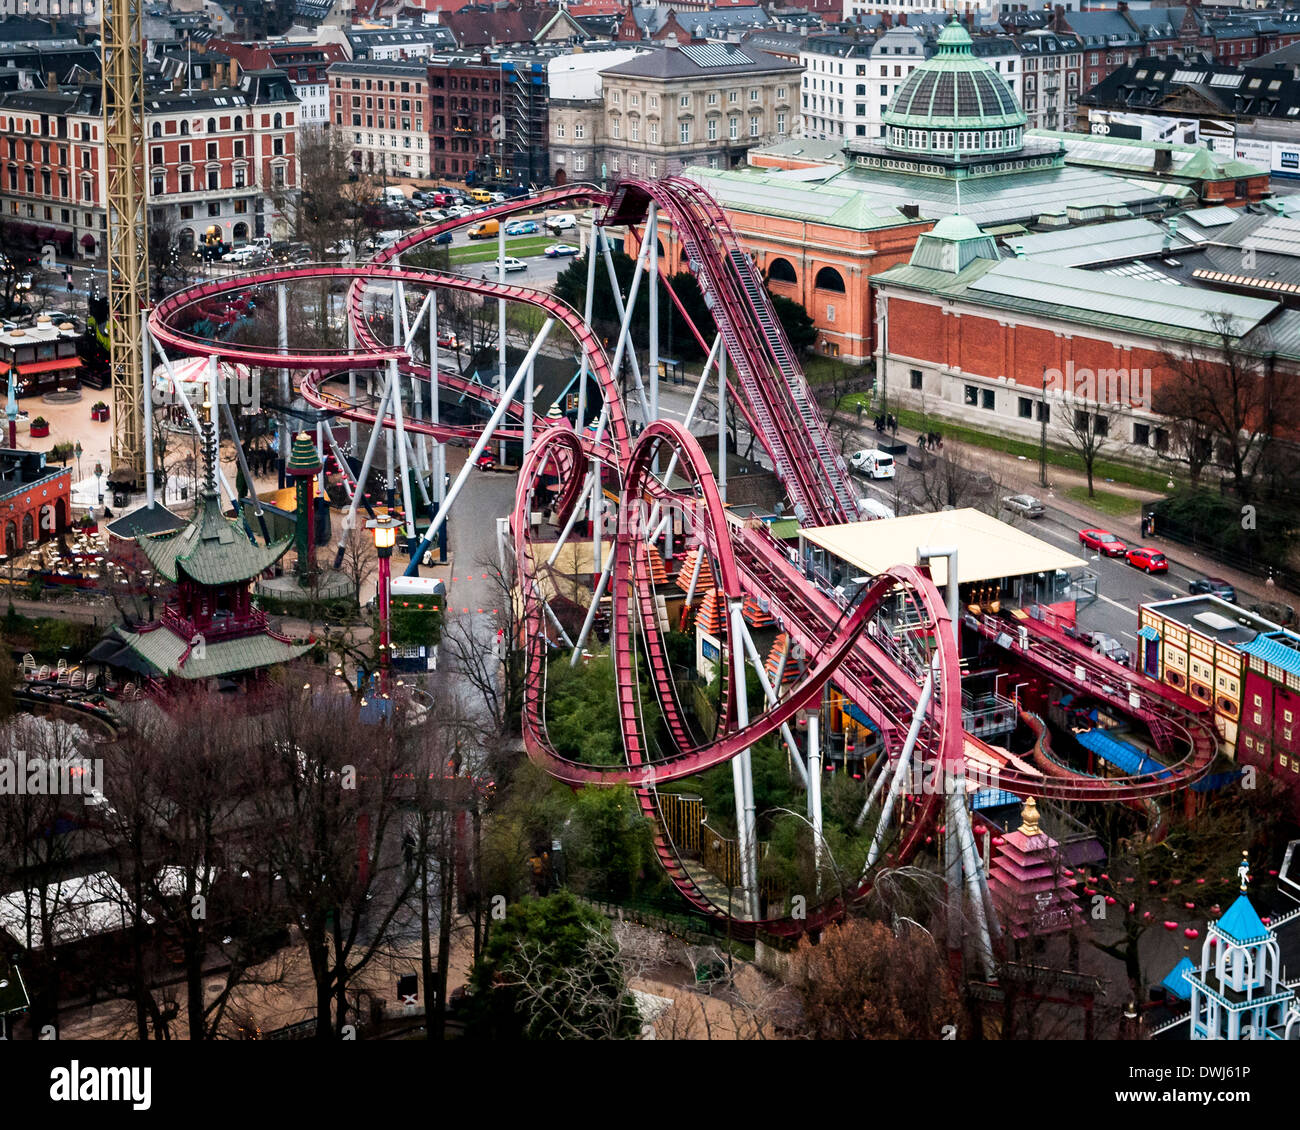 "Tivoli Gardens, Copenhagen, Denmark. Architect: Various, 2014. ""The Demon"" rollercoaster. Stock Photo"